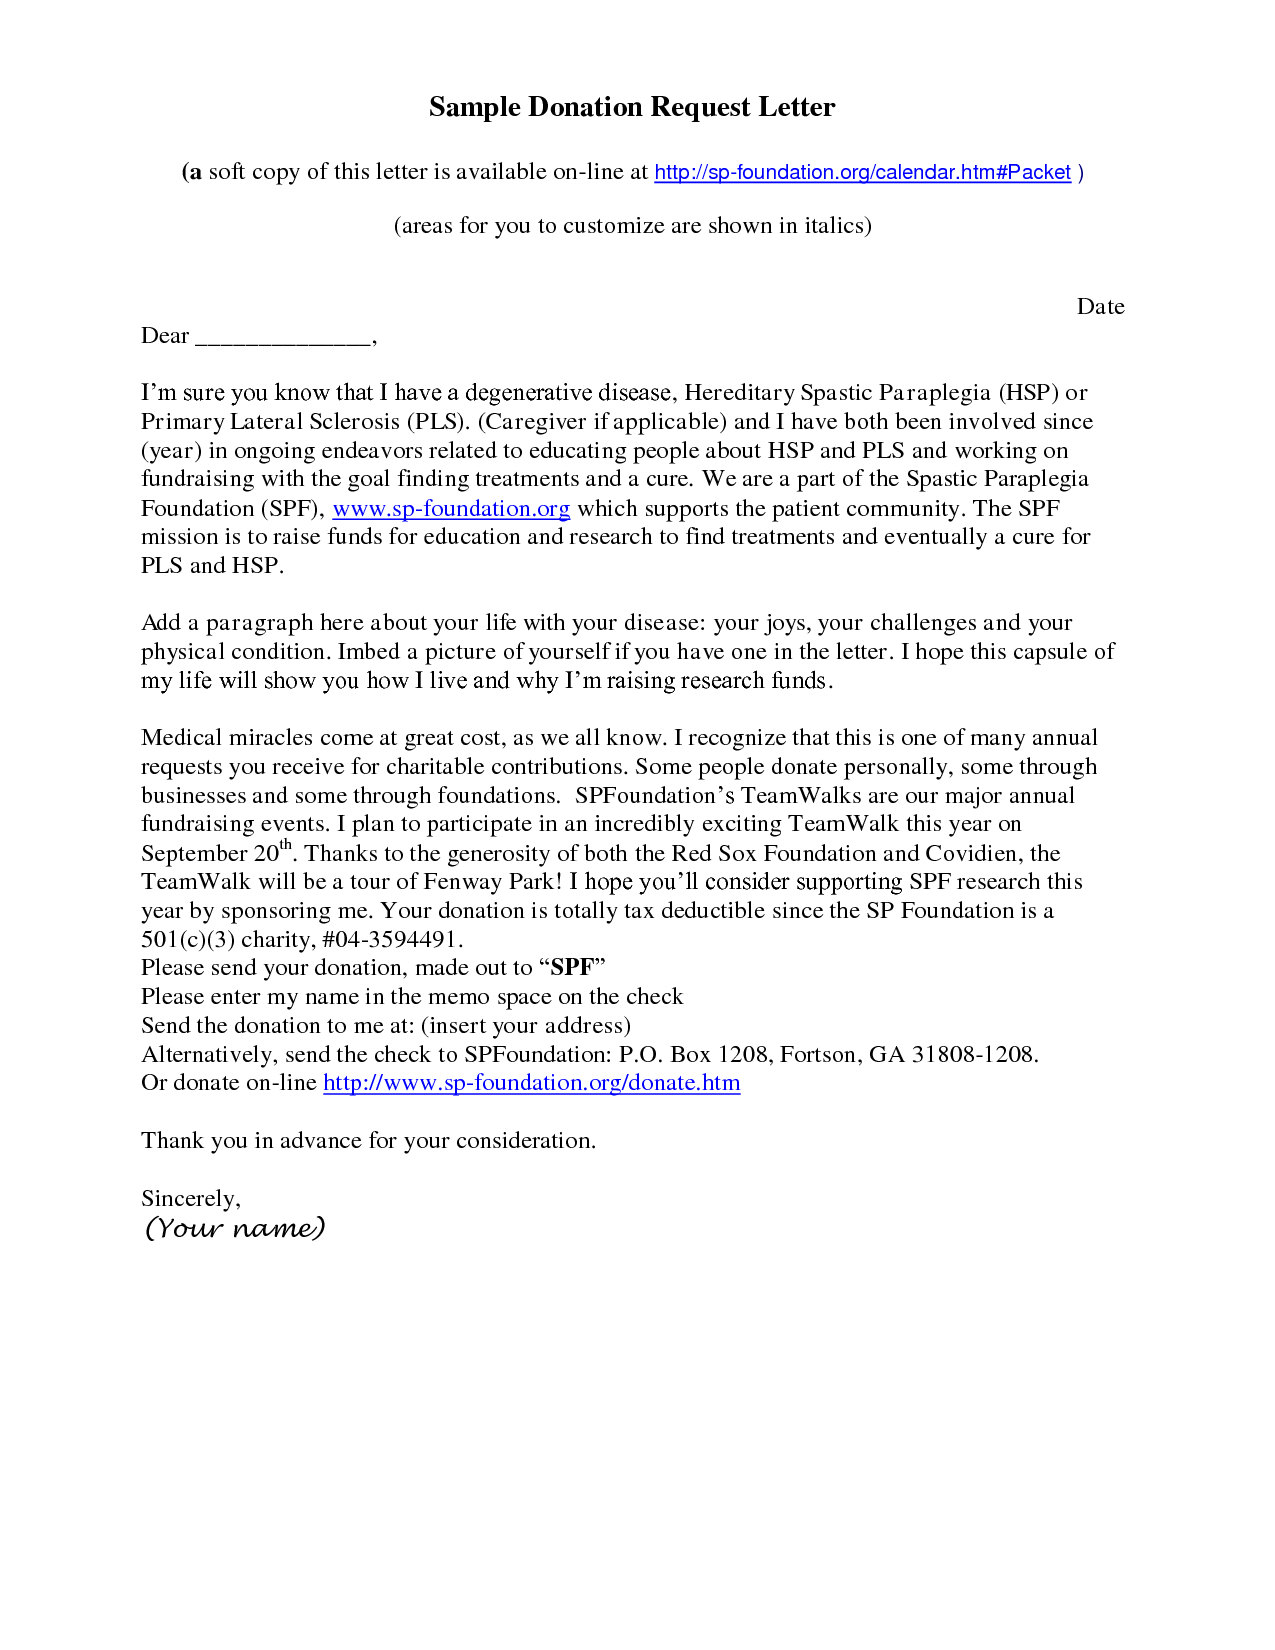 Donation Request Letter Template Word - How to Write A solicitation Letter for Donations Choice Image